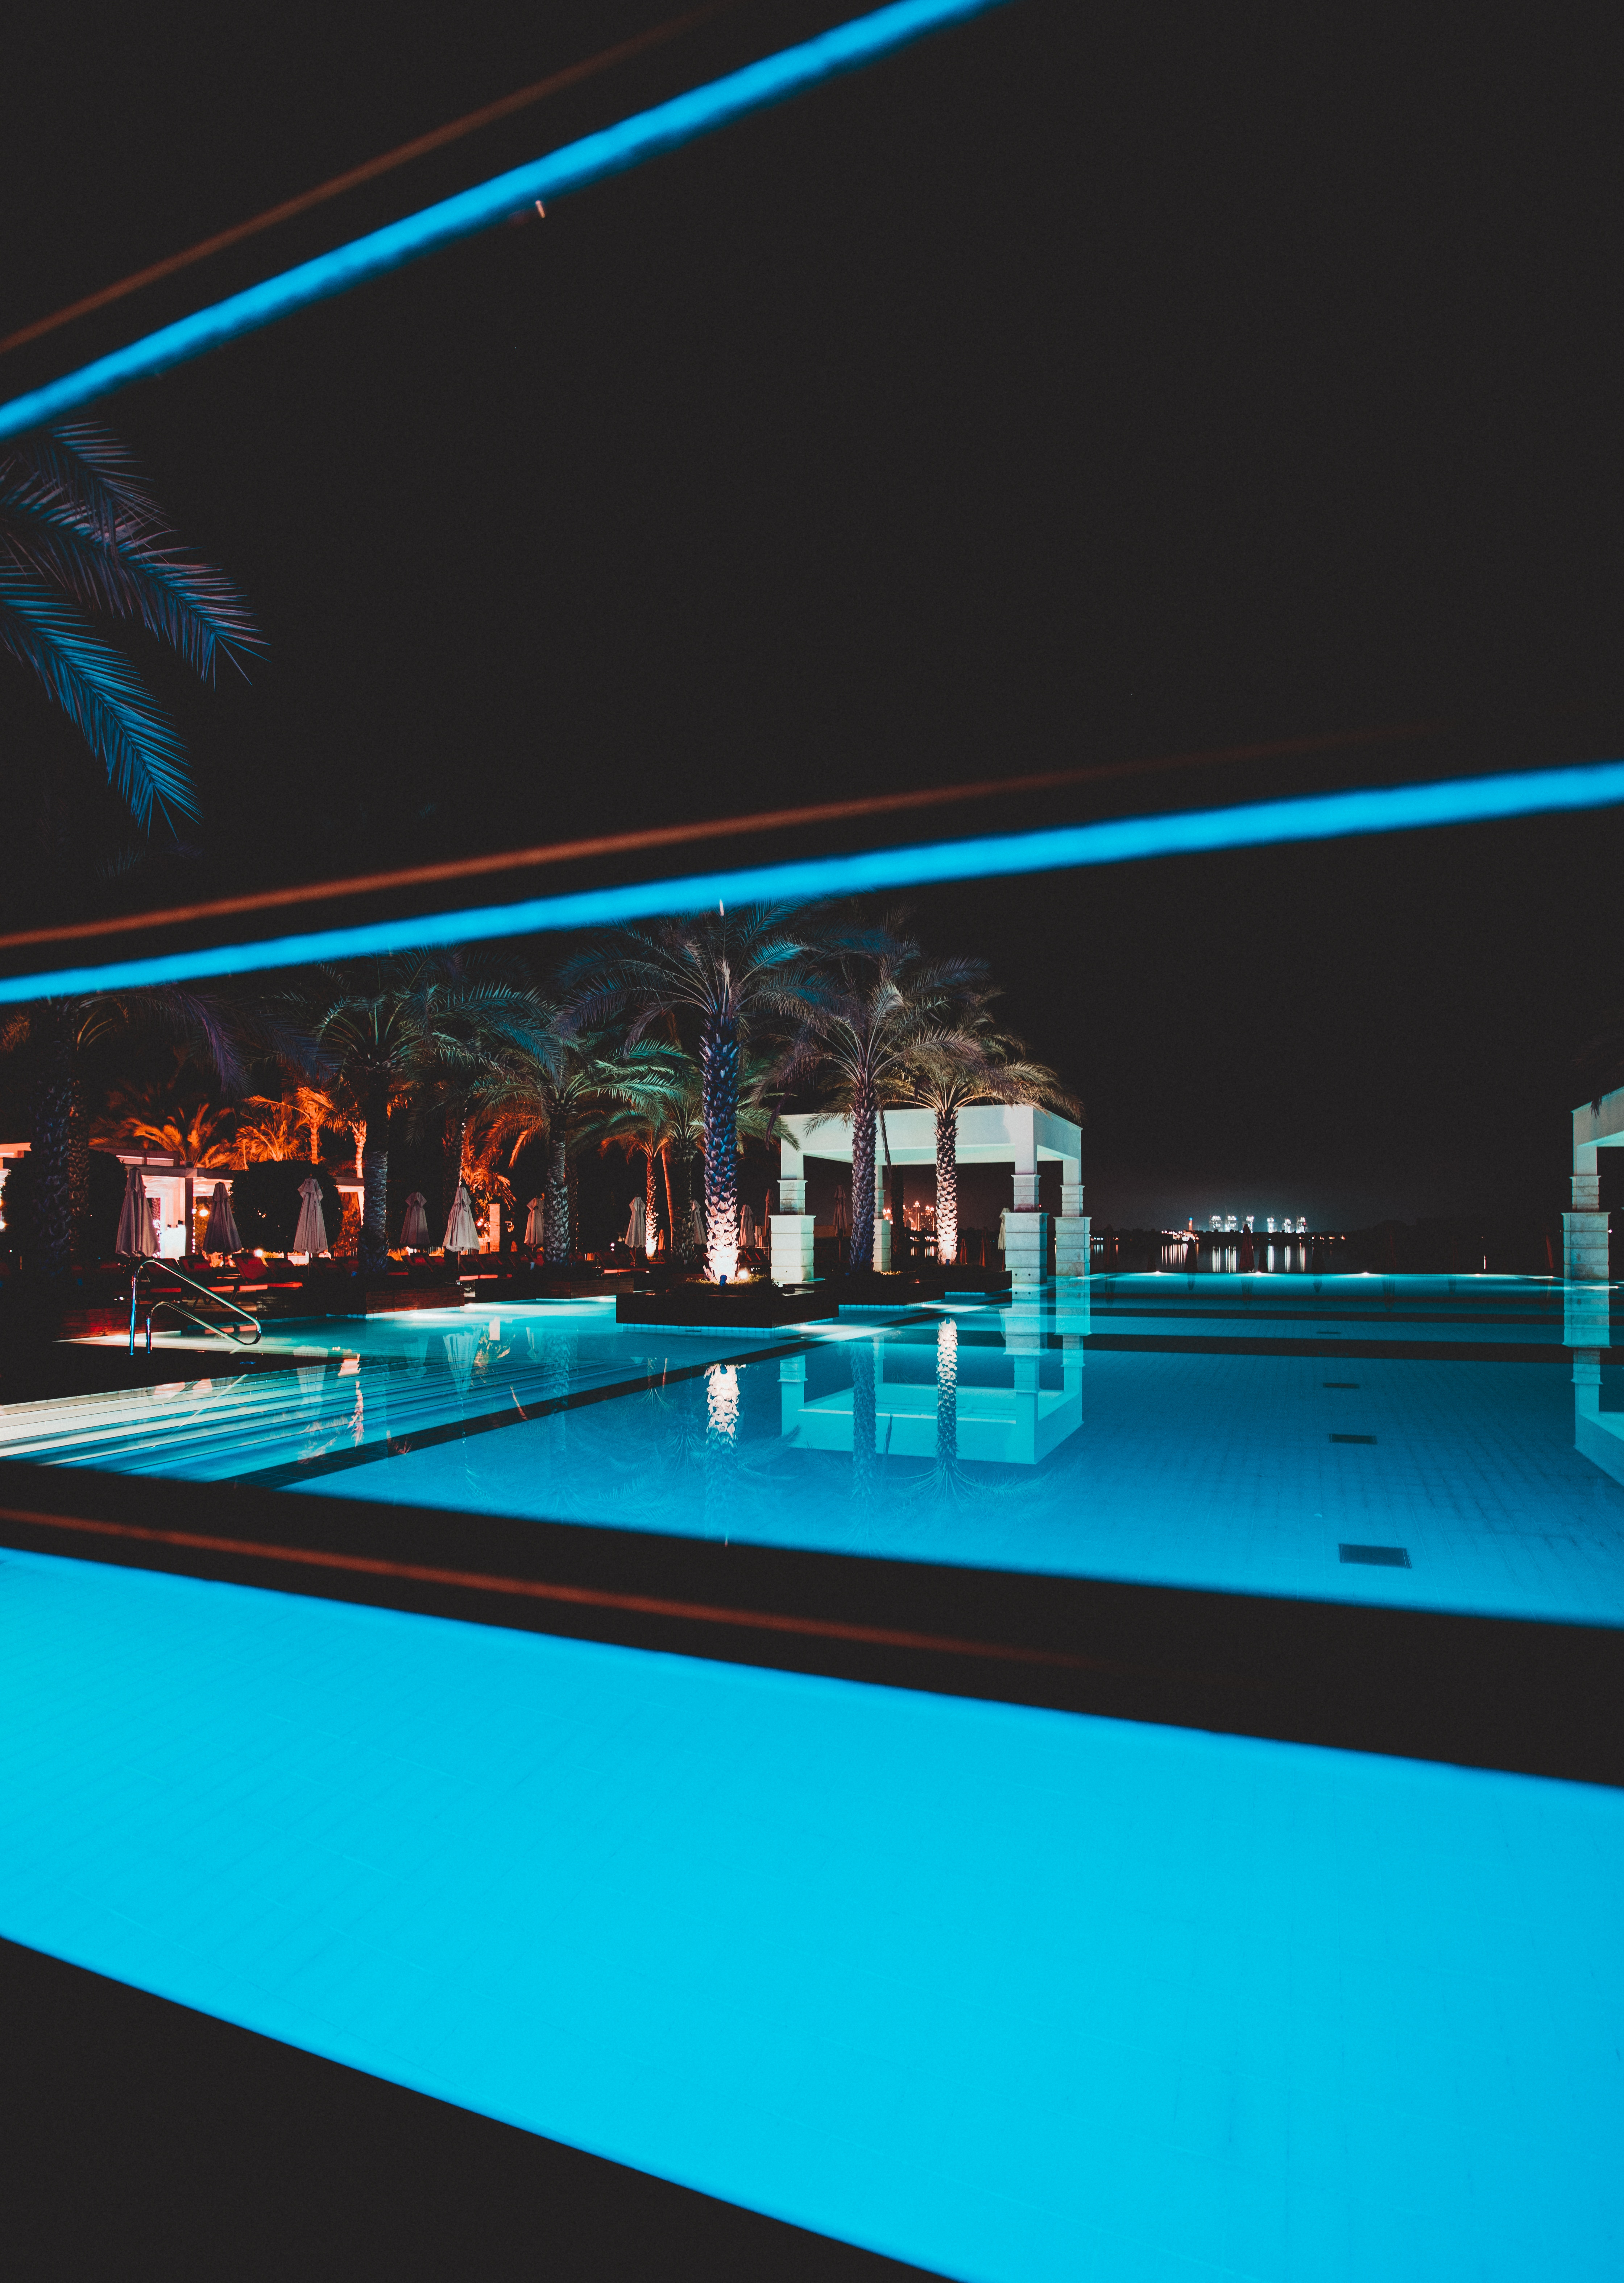 87687 download wallpaper Palms, Miscellanea, Miscellaneous, Relaxation, Rest, Pool, Relax, Suite, Lux, Five Stars screensavers and pictures for free